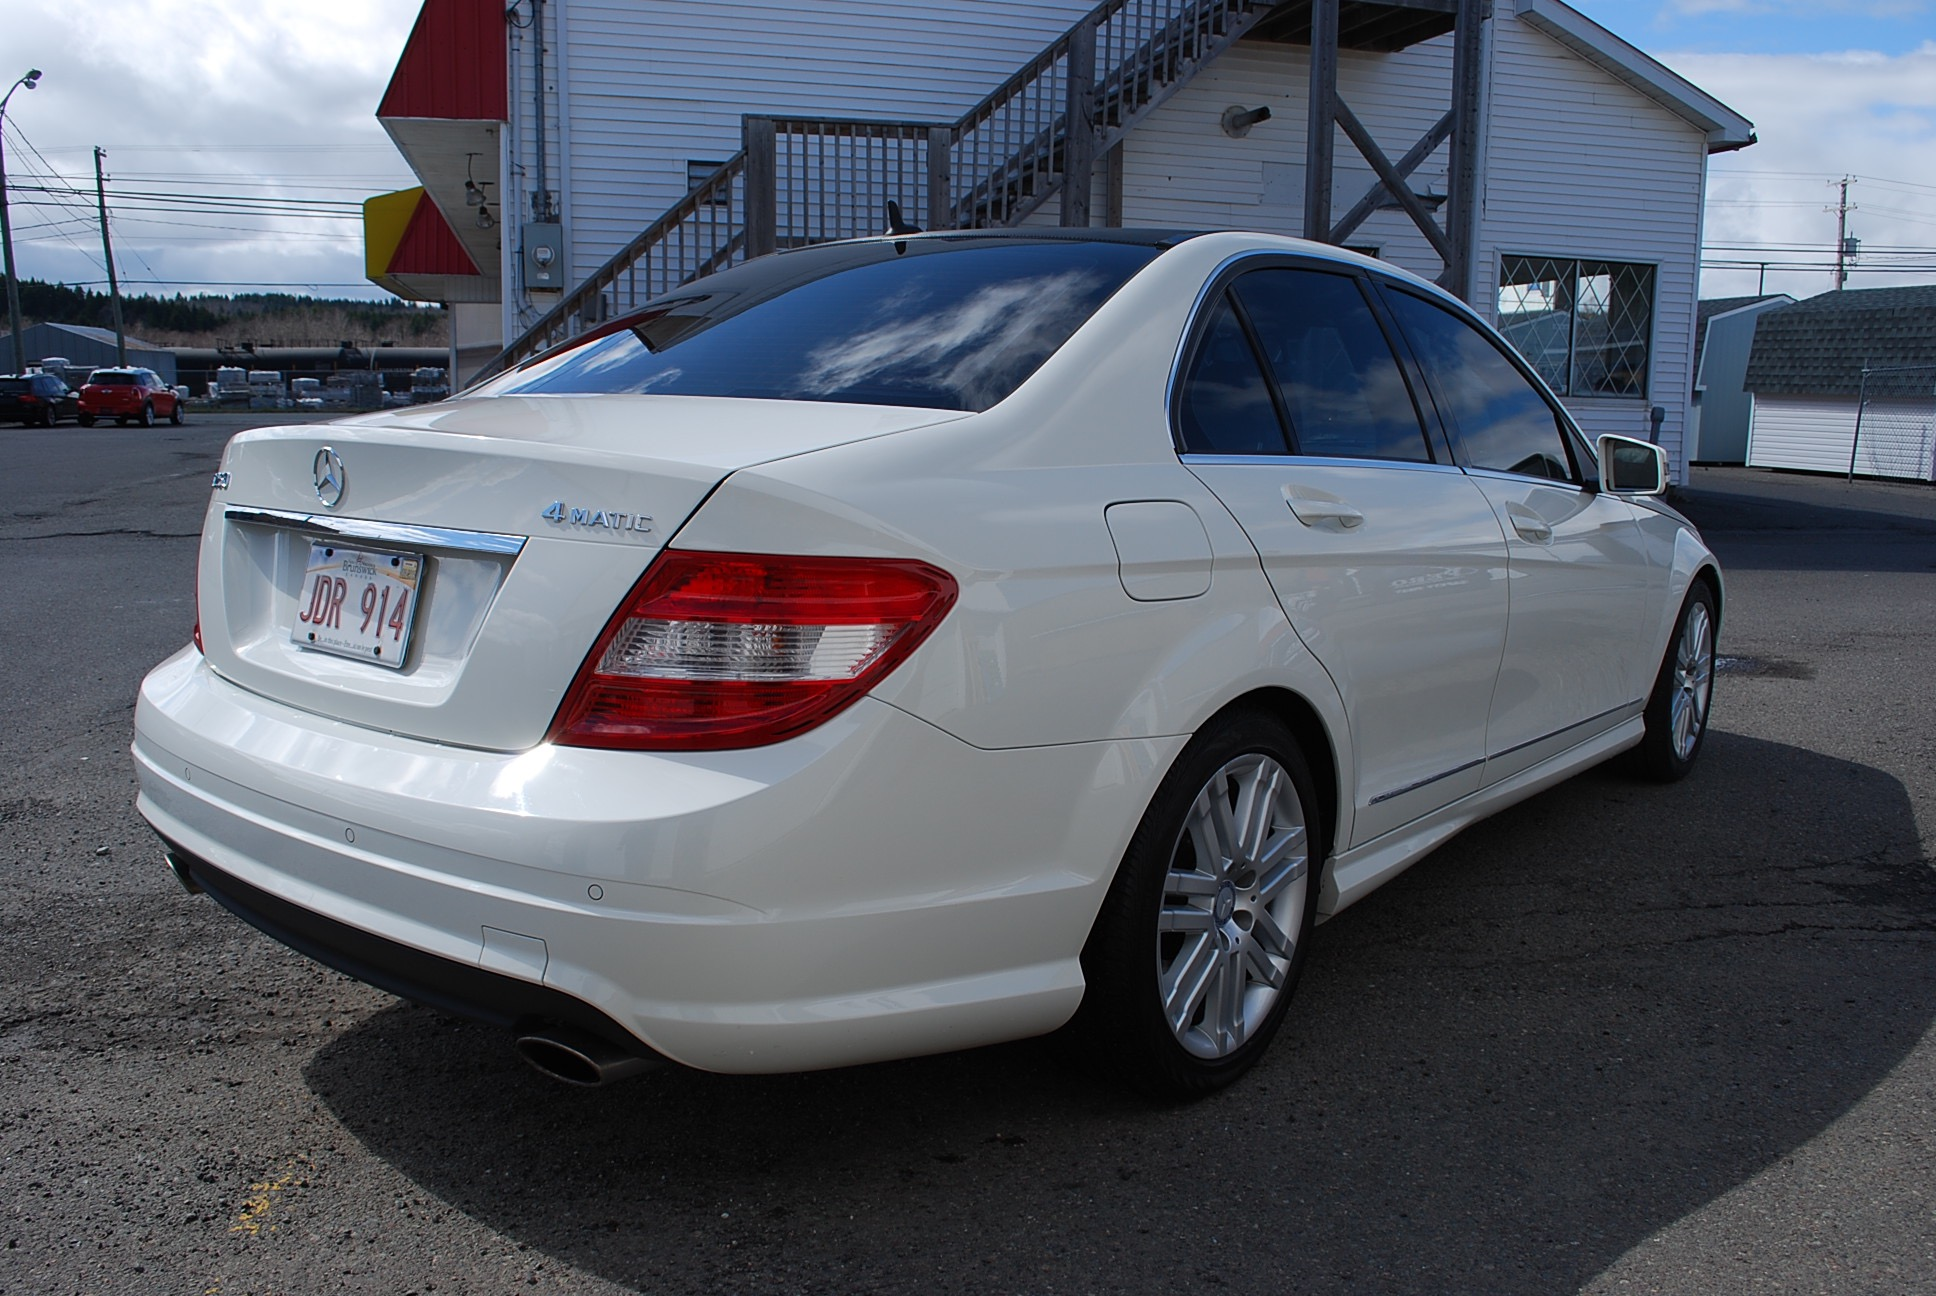 Used 2011 Mercedes C250 4Matic for sale in Saint John, NB